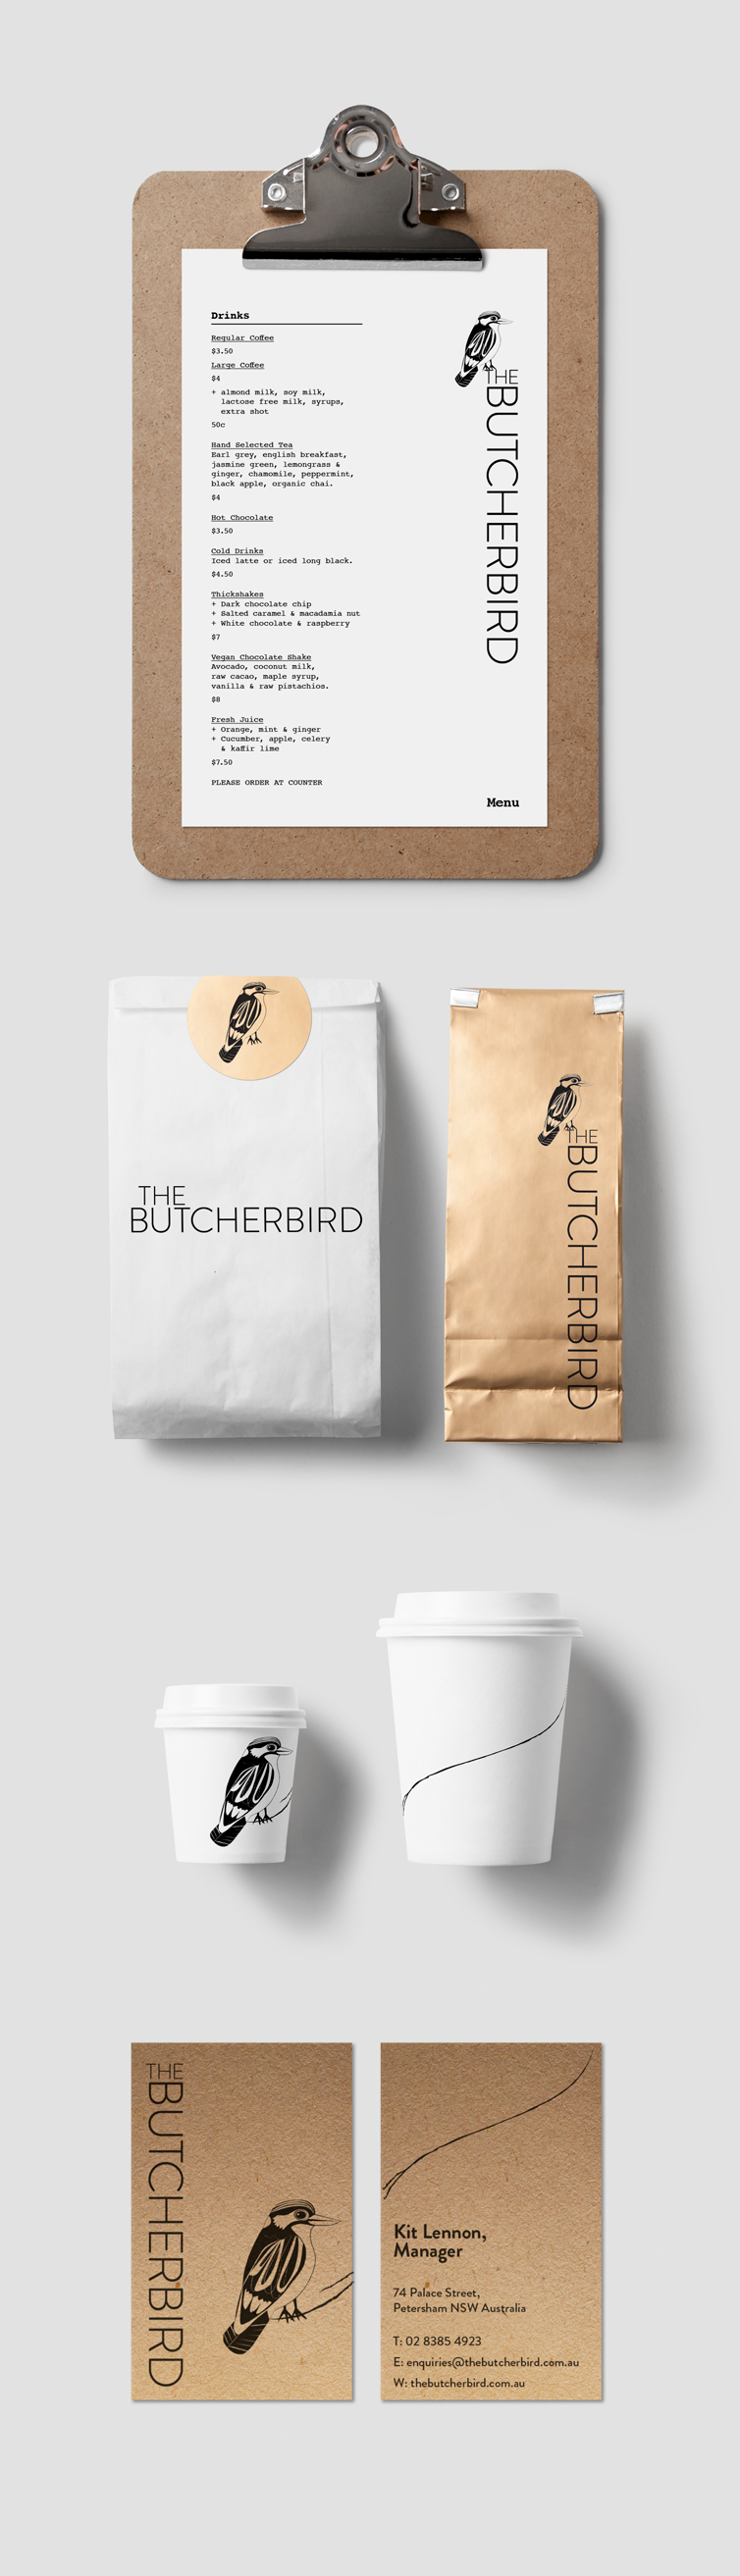 the-butcherbird-branding-mobile